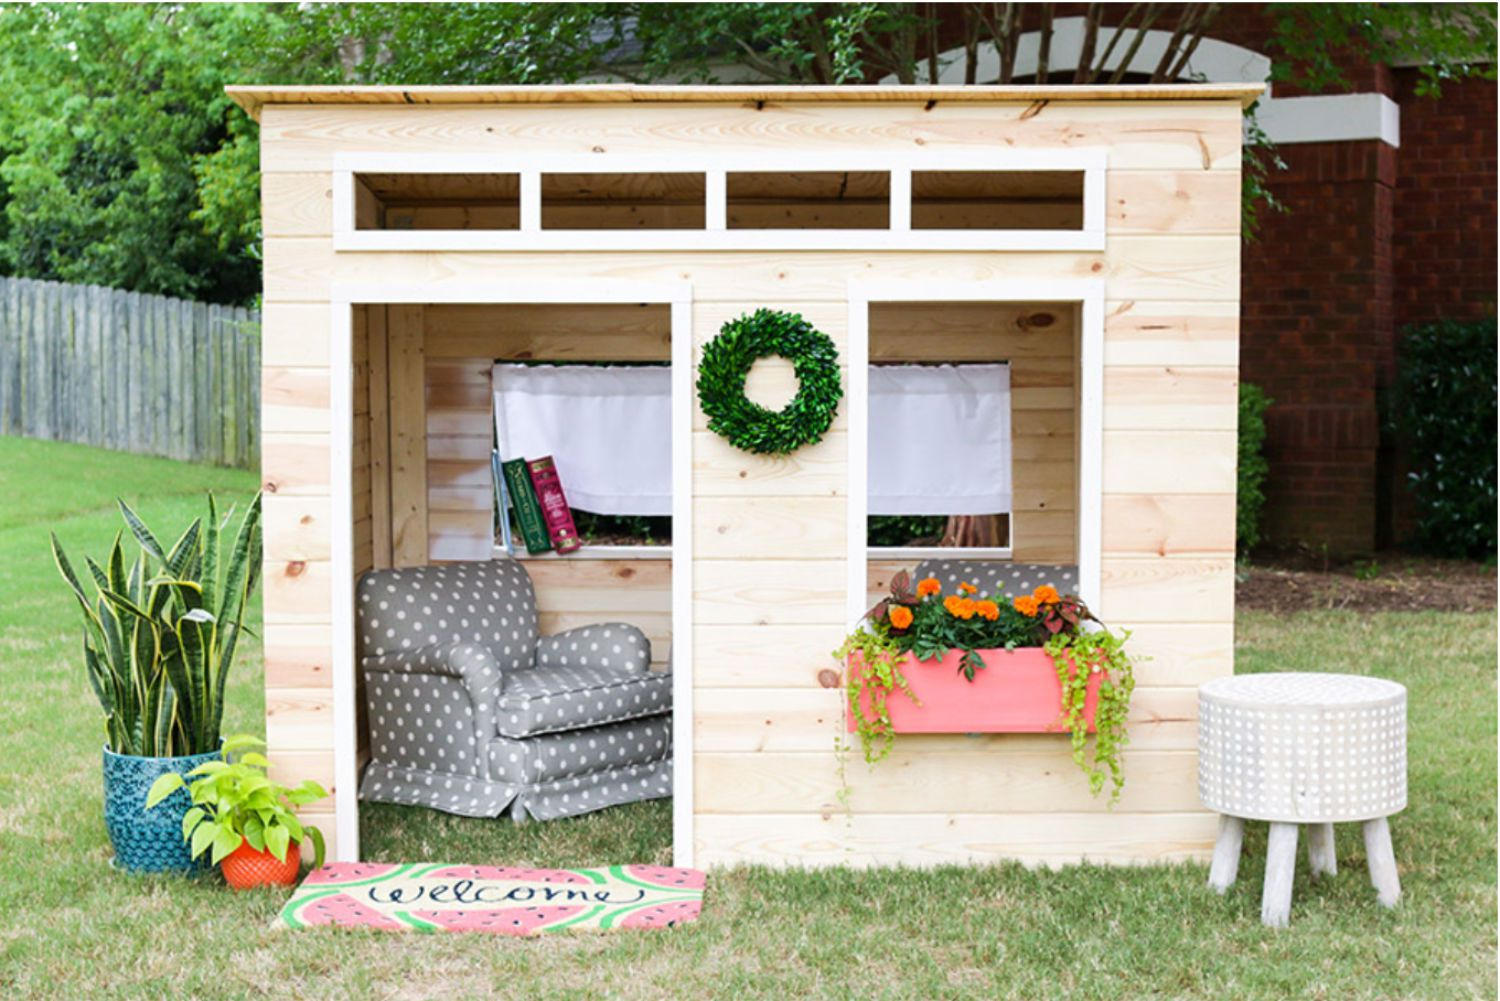 PlayhouseWoodhouse-5c298b39c9e77c00013474e8 Cheap And Easy To Build Playhouse Plans on cheap easy bookshelf plans, easy chicken coop plans, cheap easy tree house plans, free&easy cabin plans, cheap playhouse ideas,